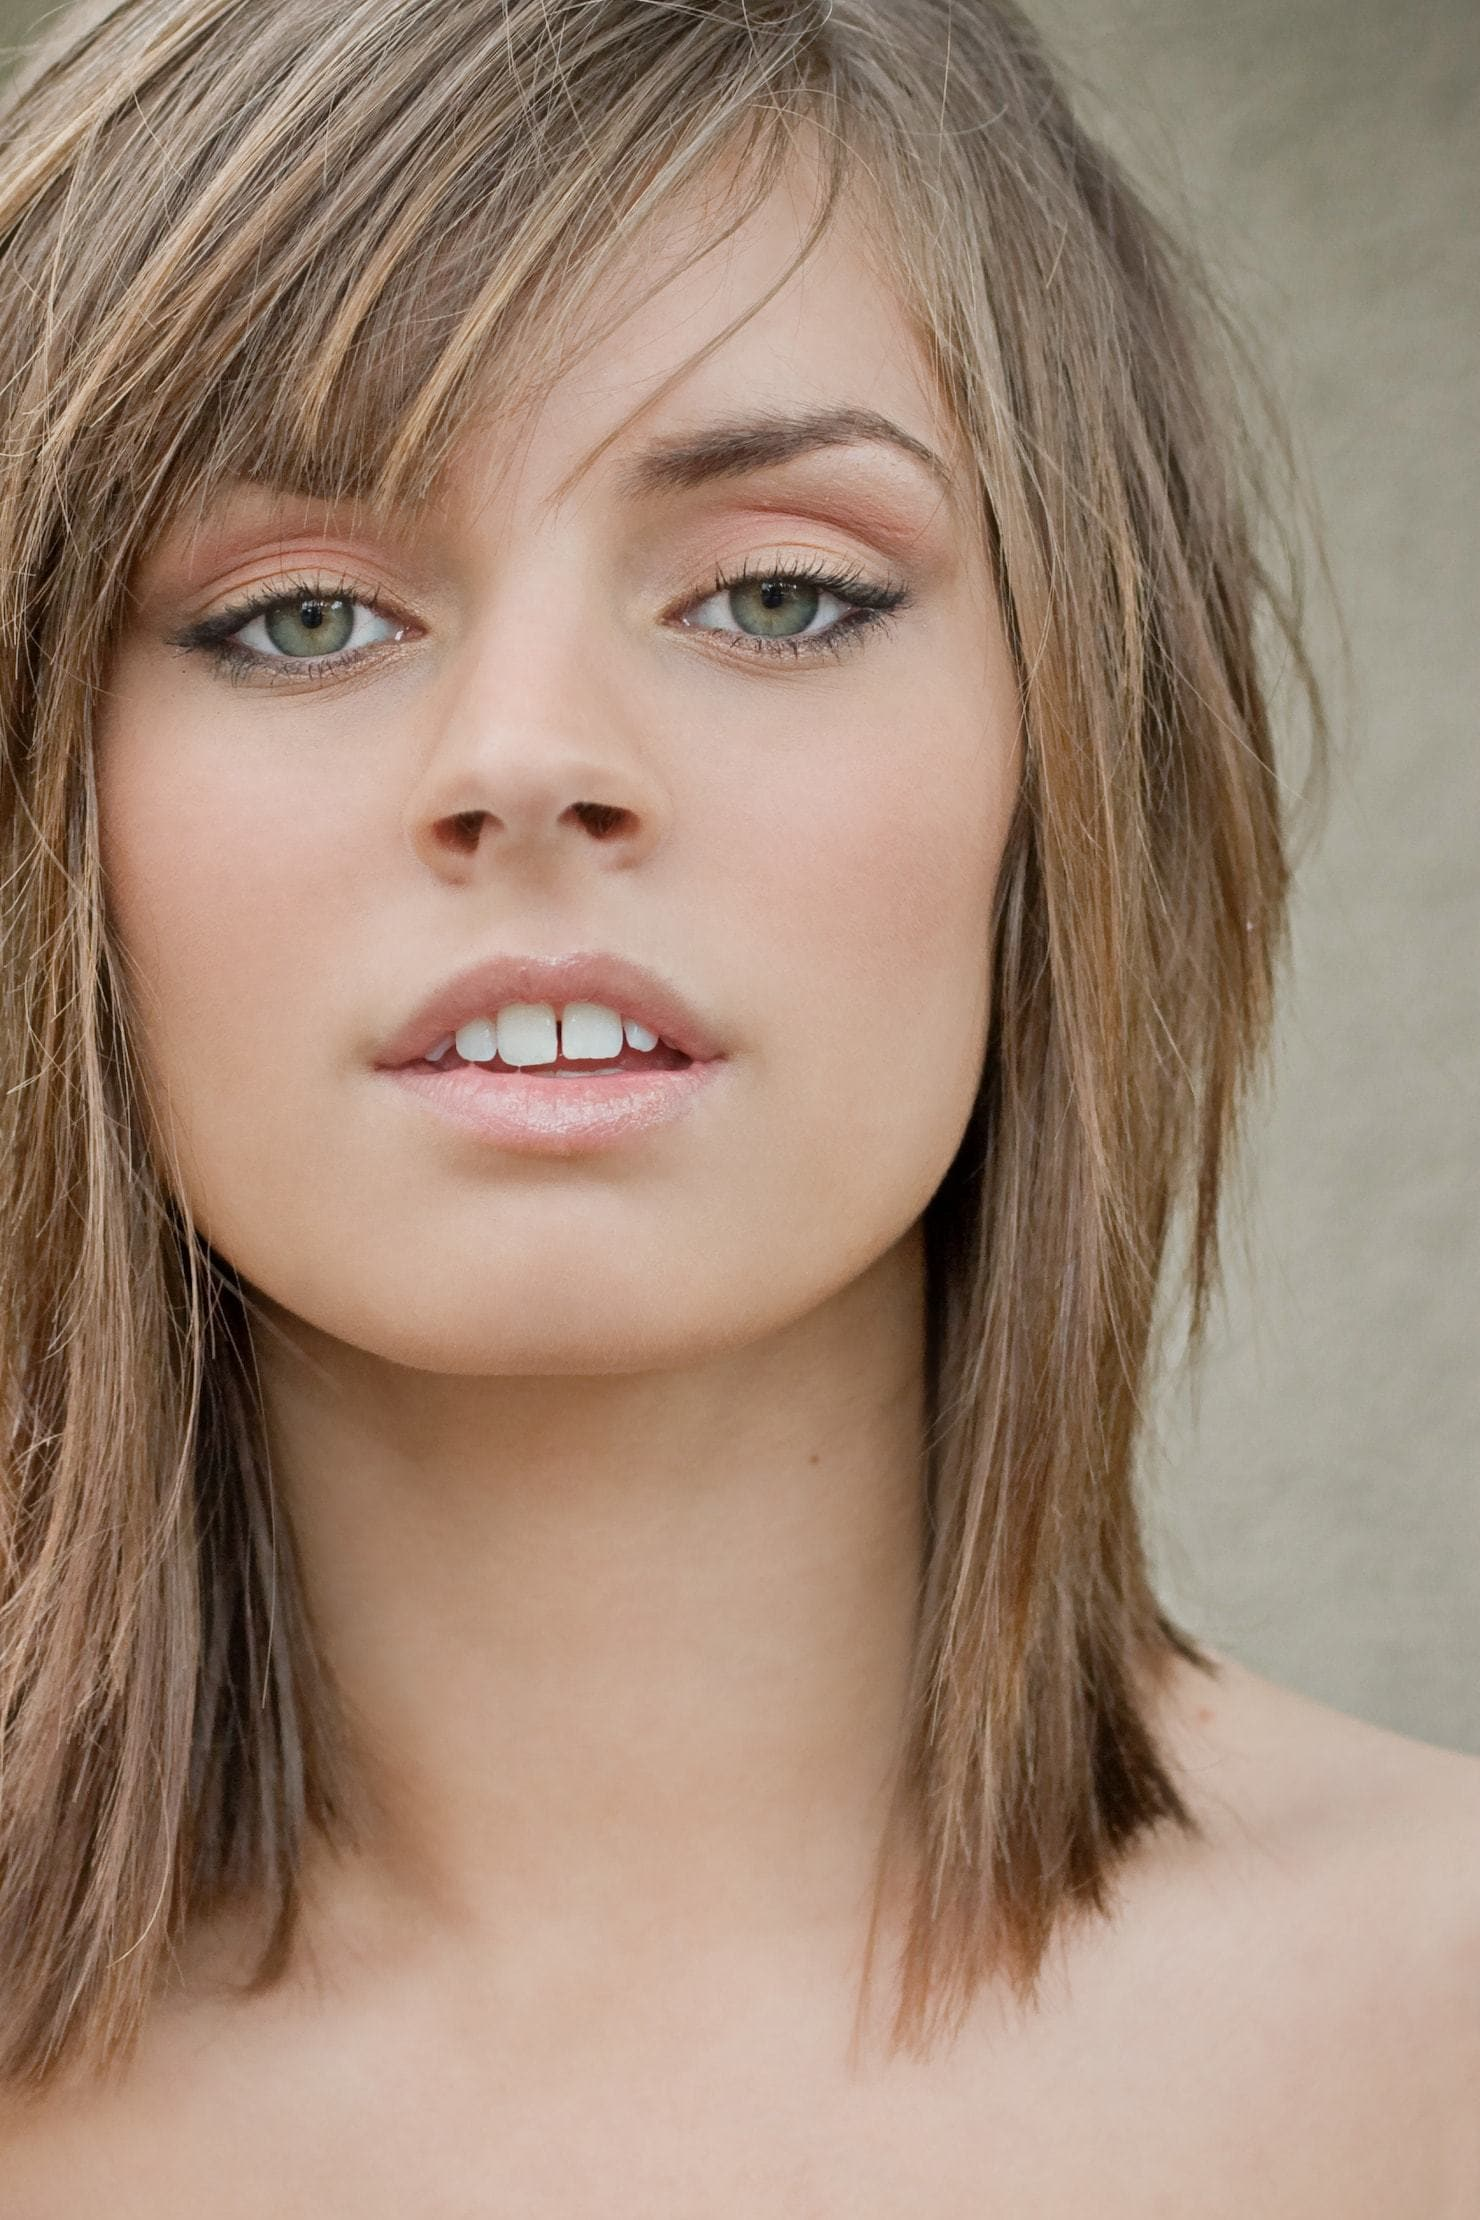 Latest Edgy Short Bangs For Angled Faces-20 Looks to Try 7